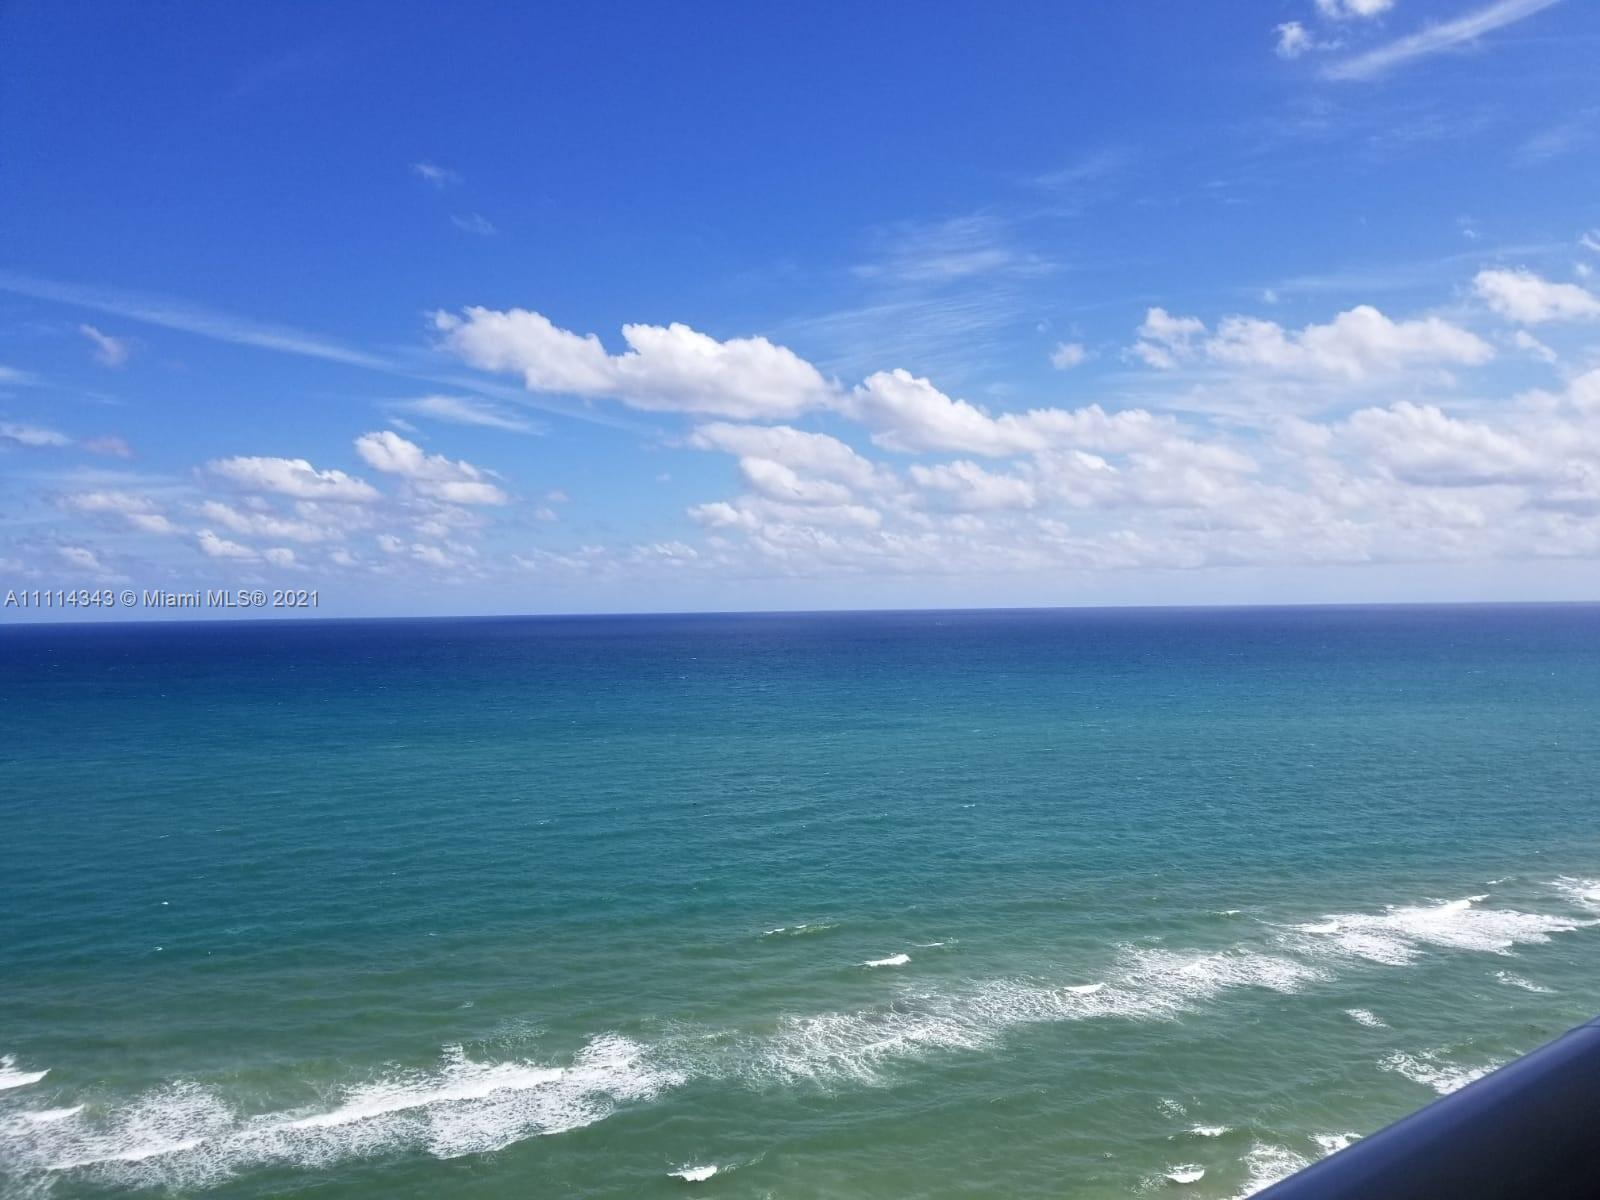 BEAUTIFUL UNIT WITH UNOBSTRUCTED AND BREATHTAKING DIRECT OCEAN VIEW FROM THE 25TH FLOOR. THREE BEDRO